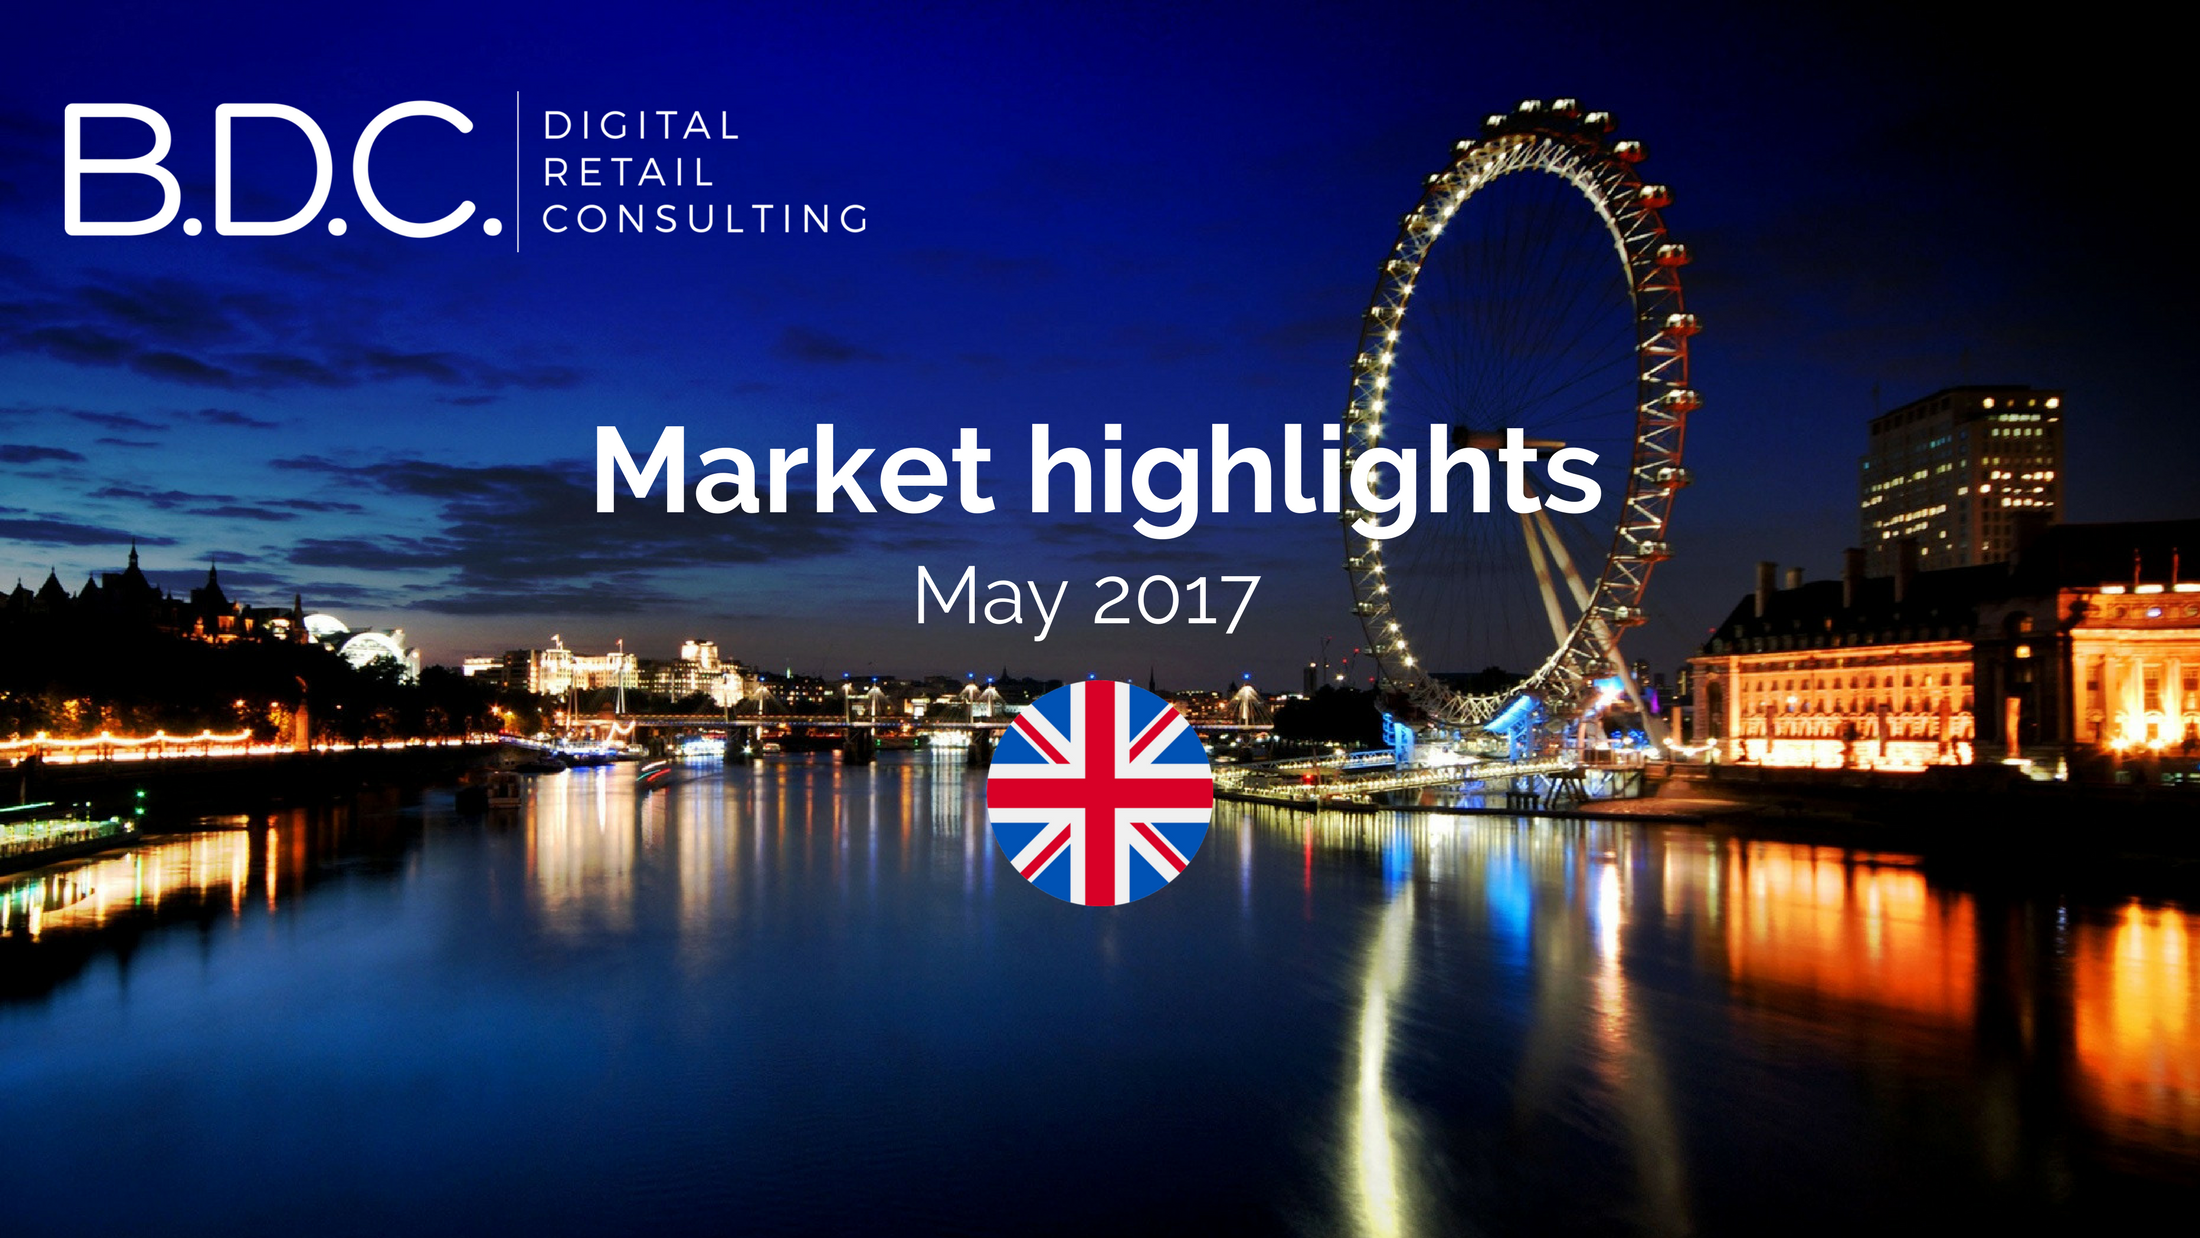 Trends News 4 1 - Market highlights - May 2017